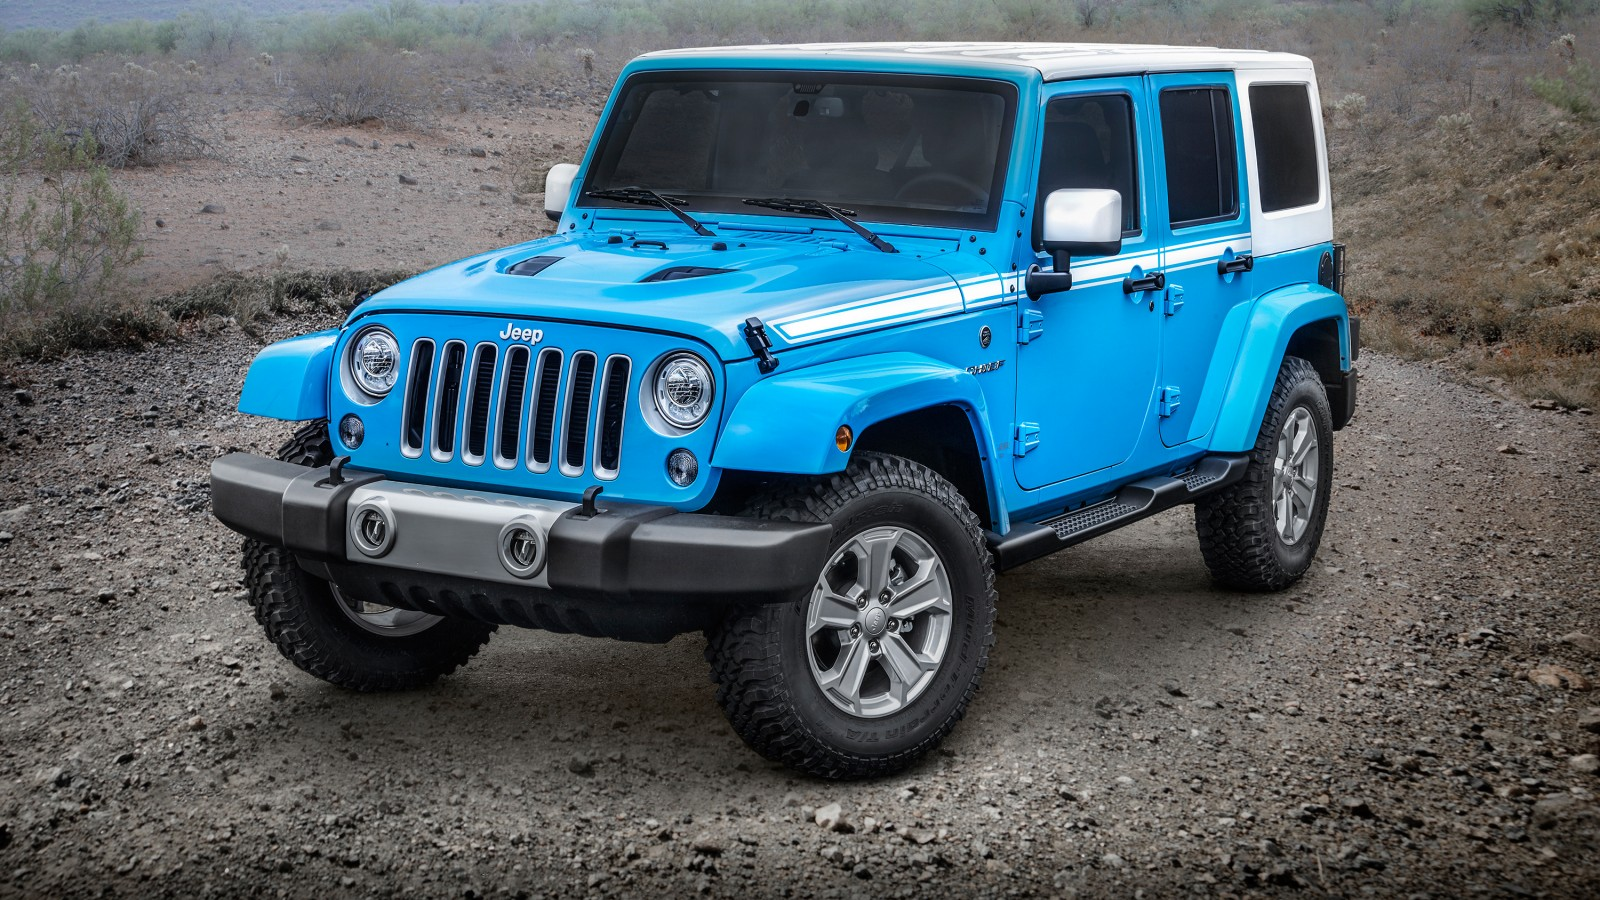 2017 Jeep Wrangler Unlimited Chief Wallpaper Hd Car